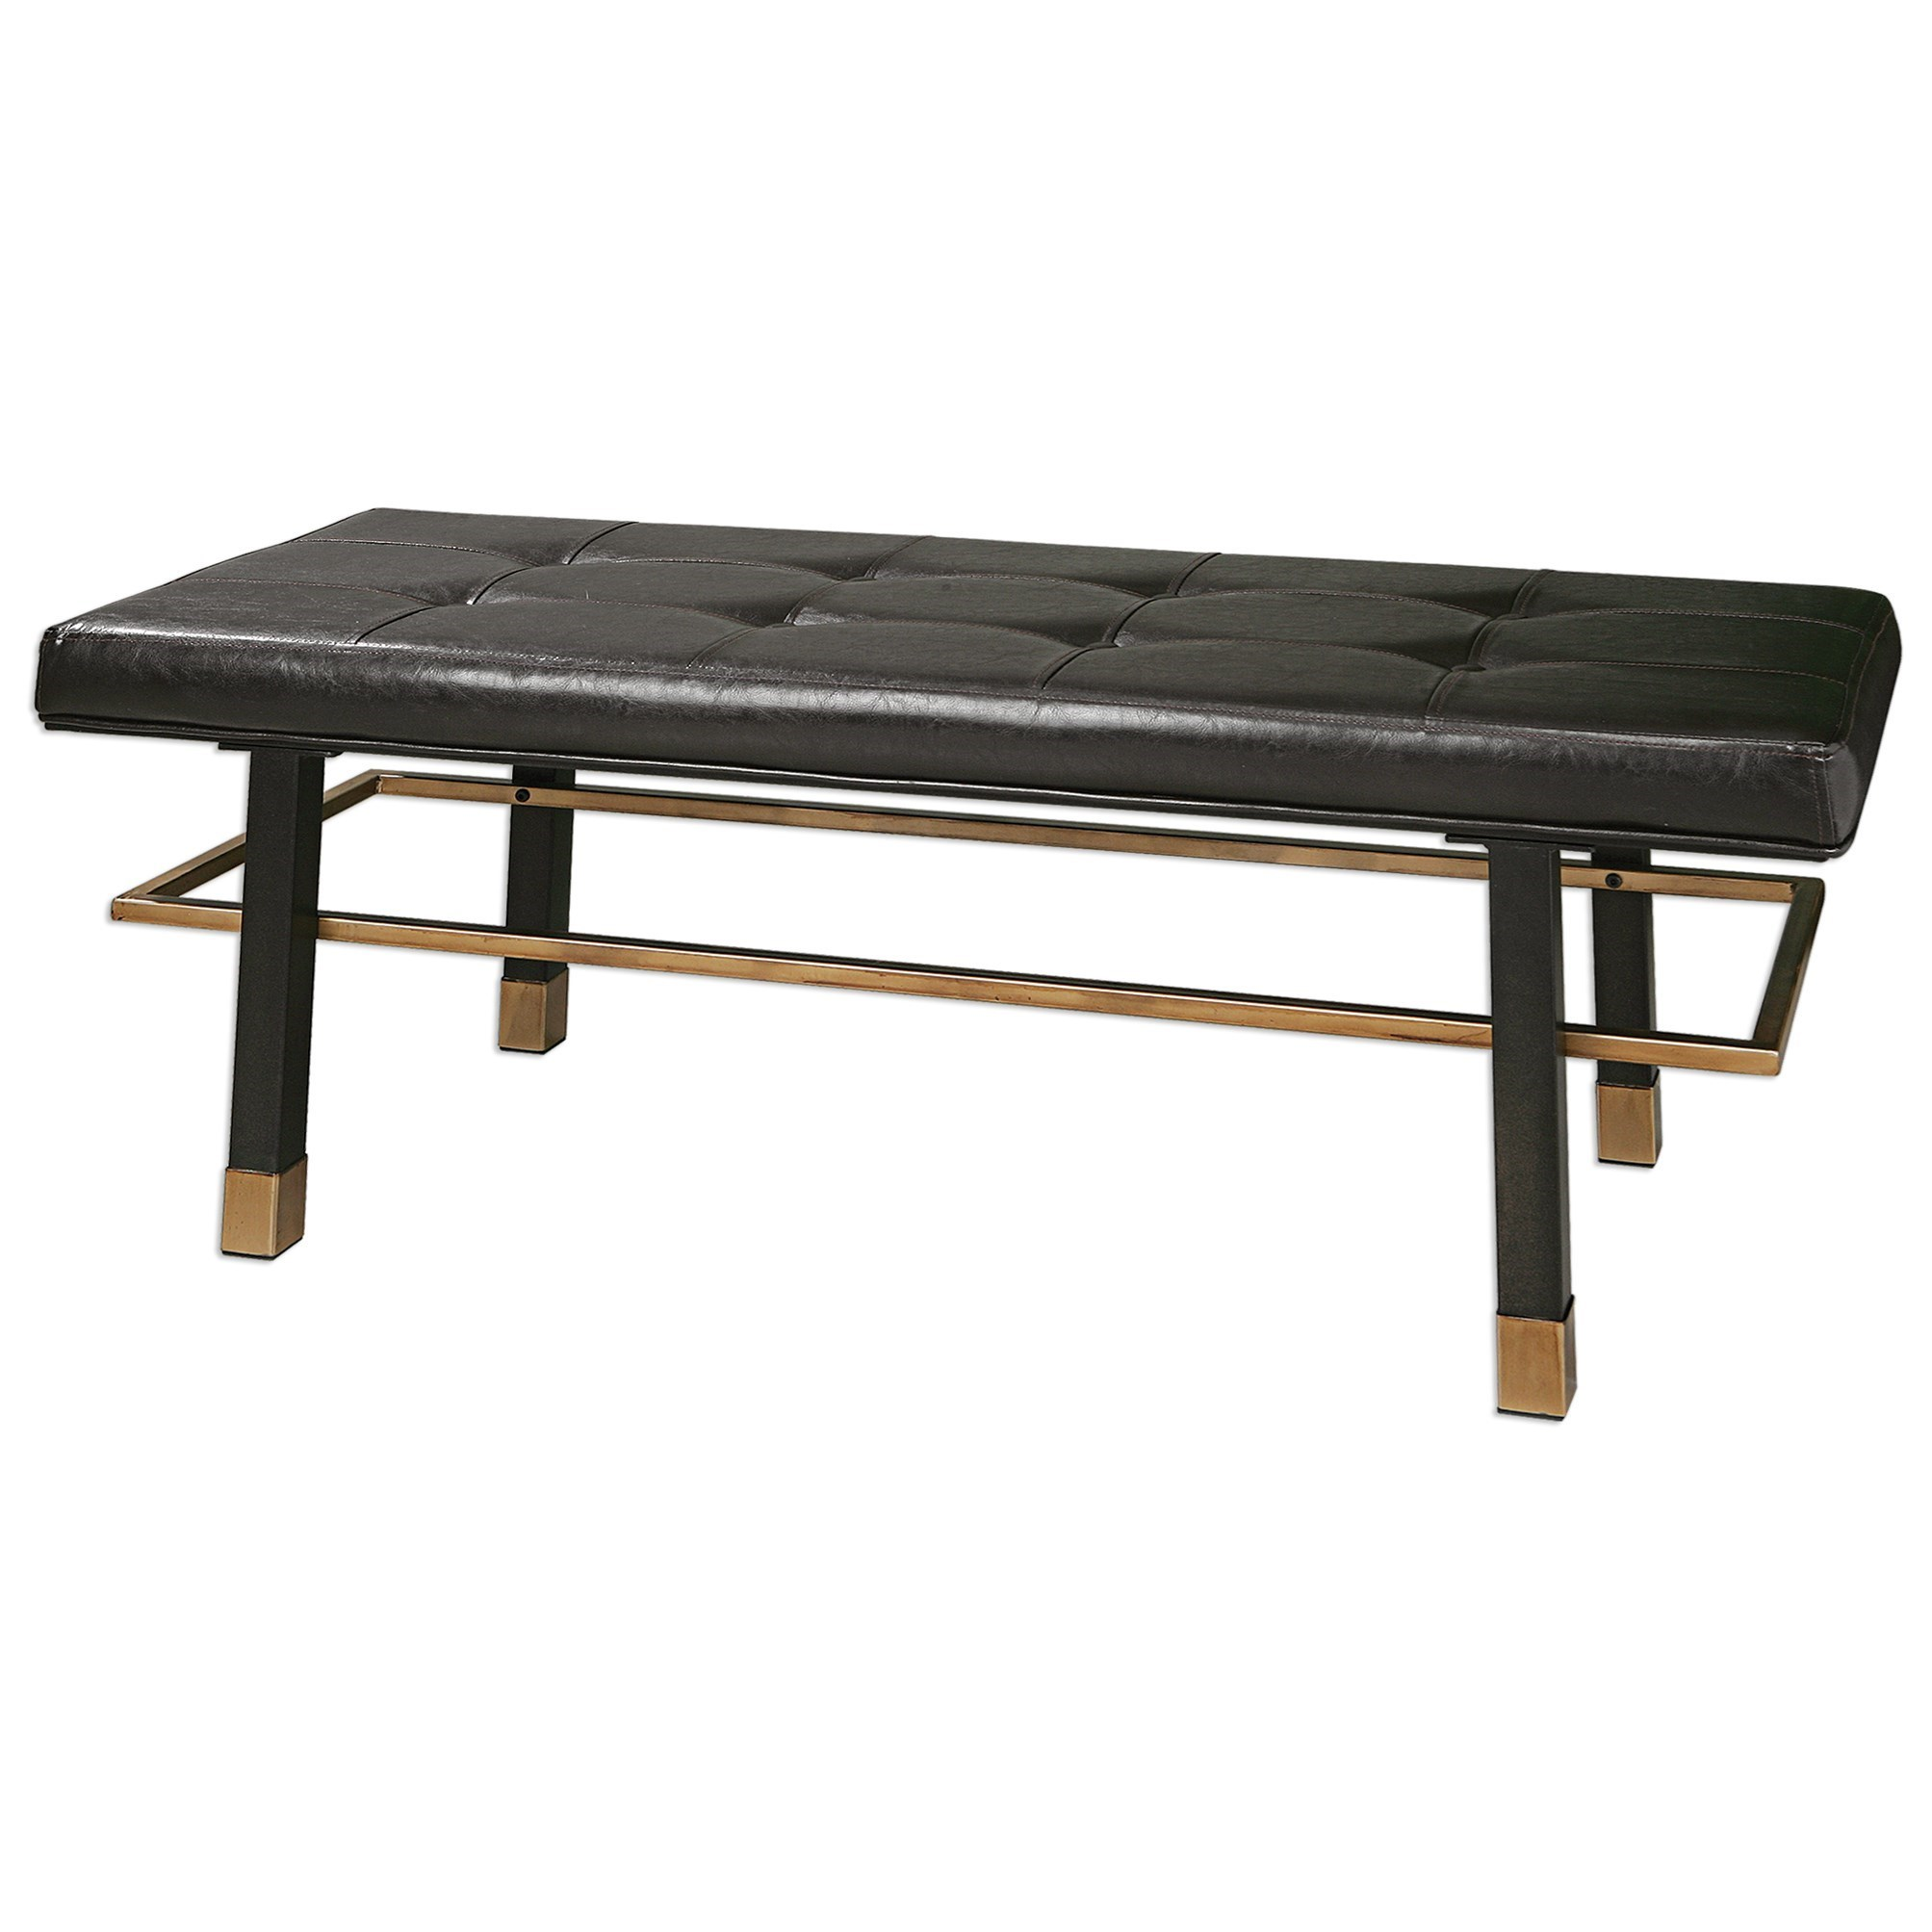 Uttermost Accent Furniture Leather Hennesy Bench - Item Number: 23279